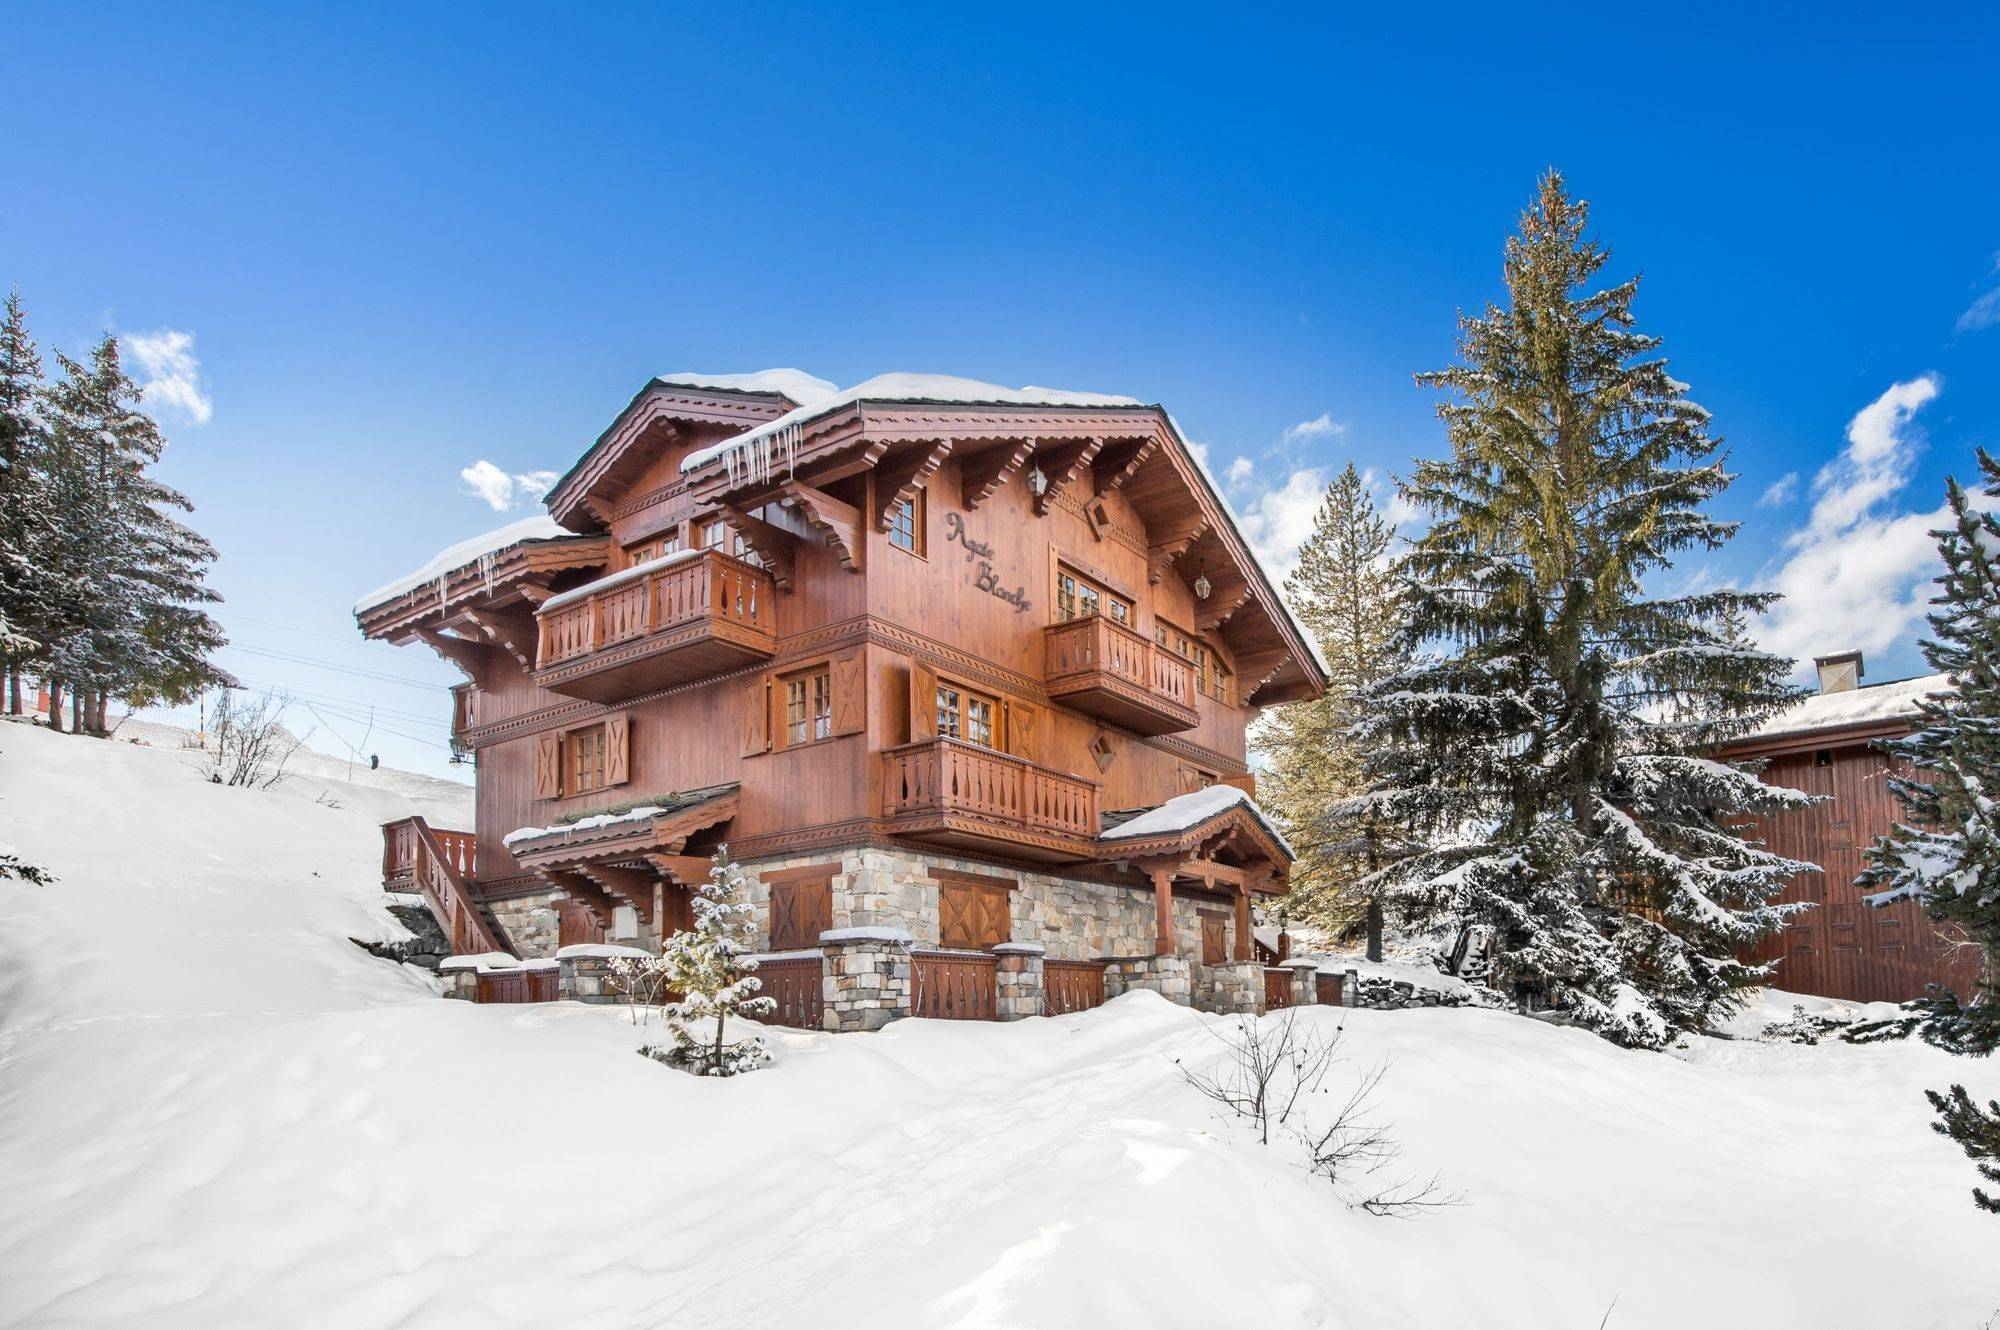 Agathe Blanche Accommodation in Courchevel